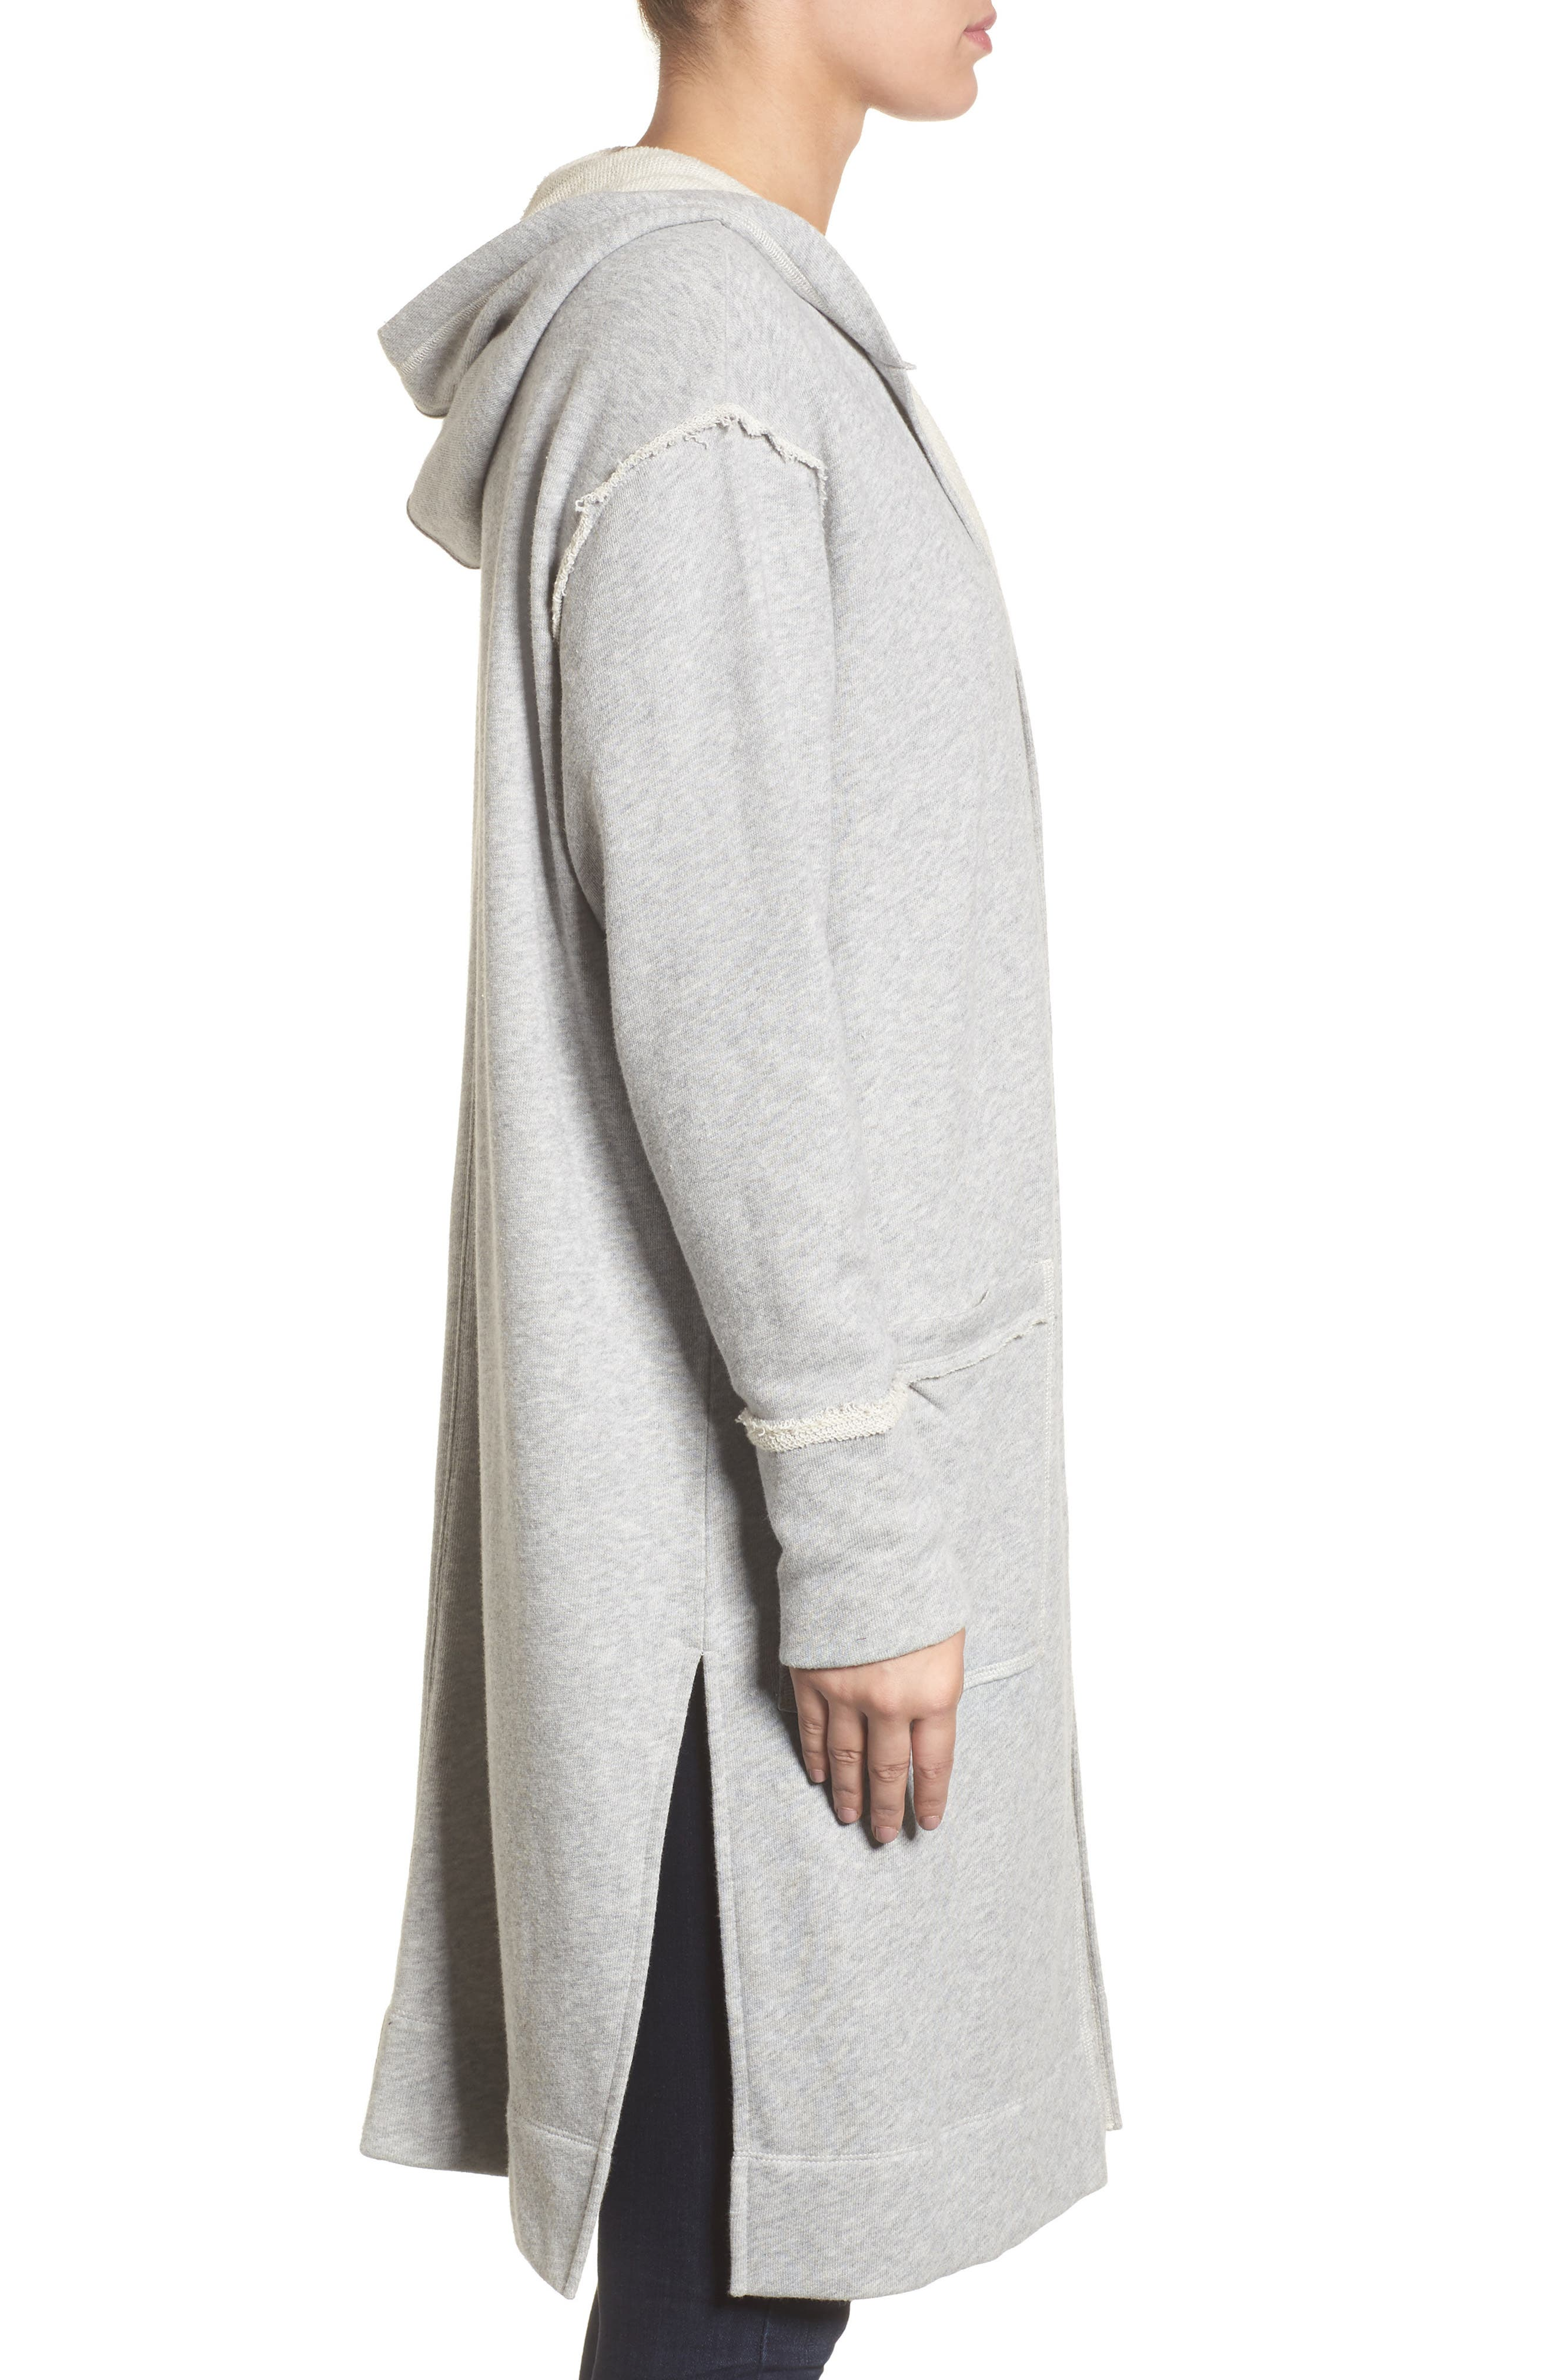 Hooded Long Cardigan,                             Alternate thumbnail 3, color,                             Grey Heather